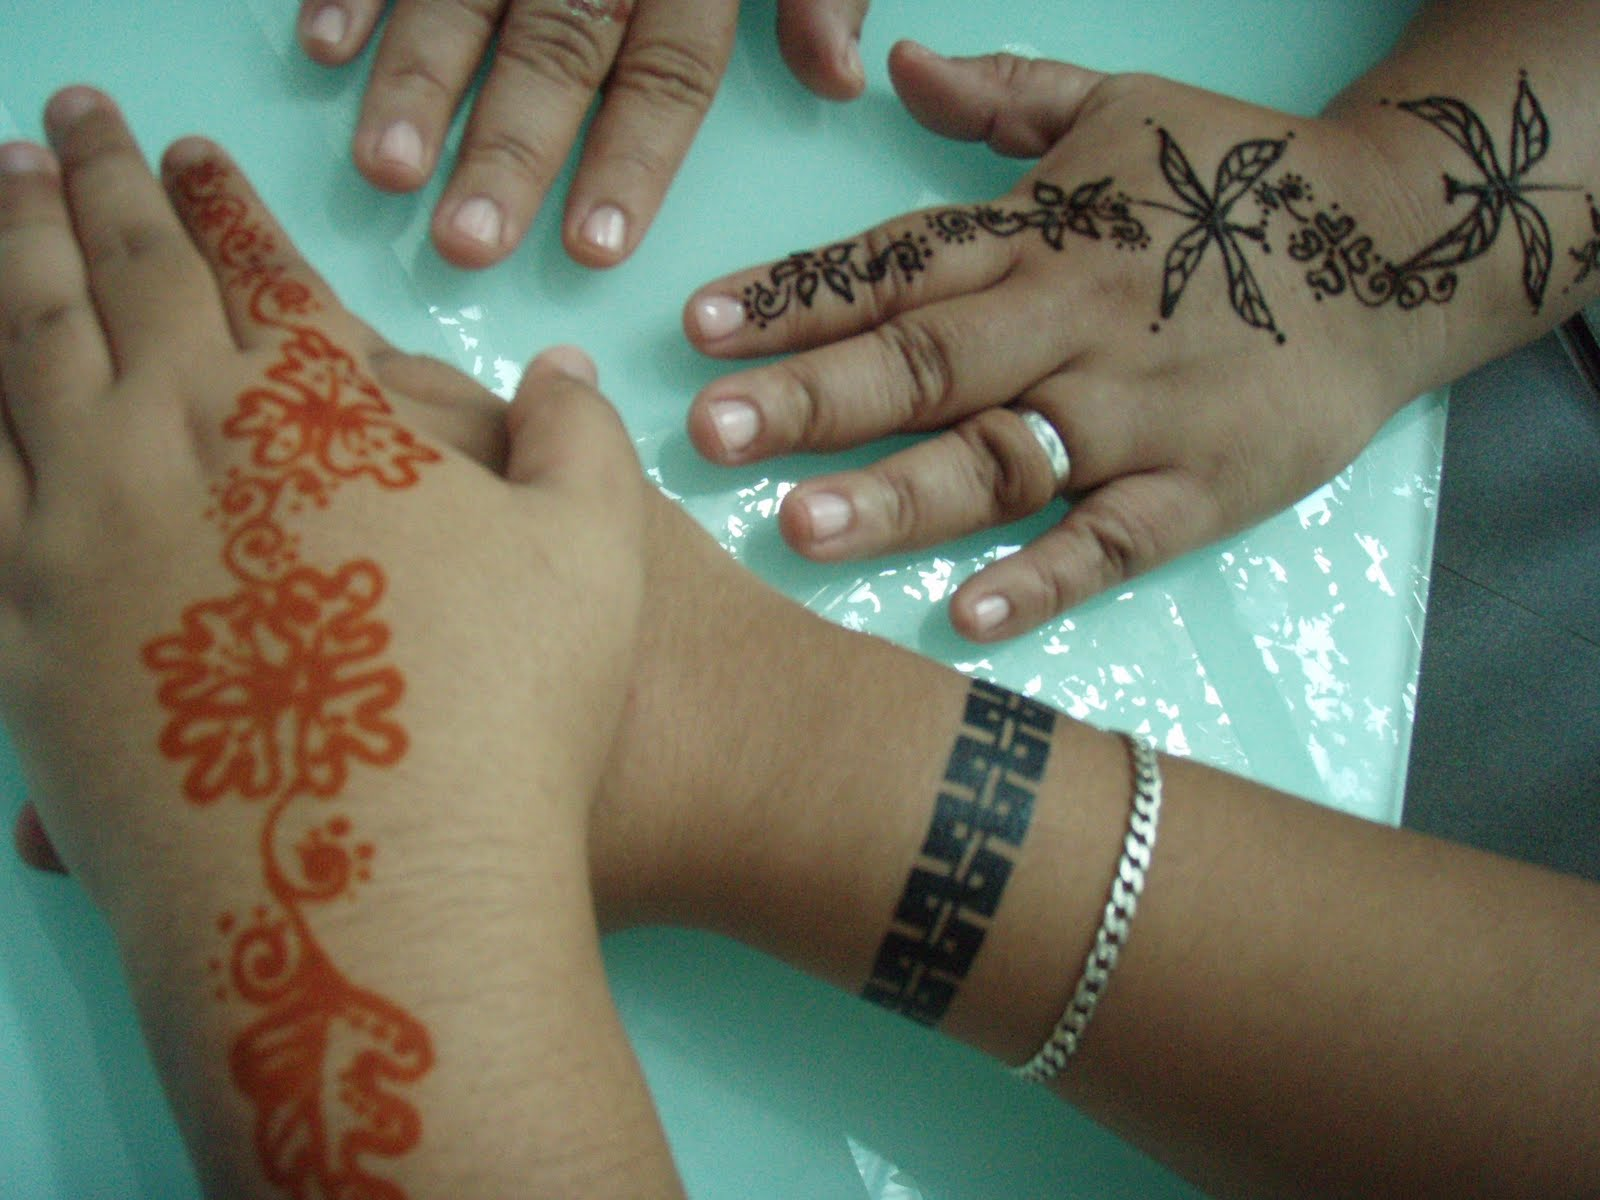 FACE PAINTING KL BODY ART HENNA TATTOO HENNA Inai At Dottie